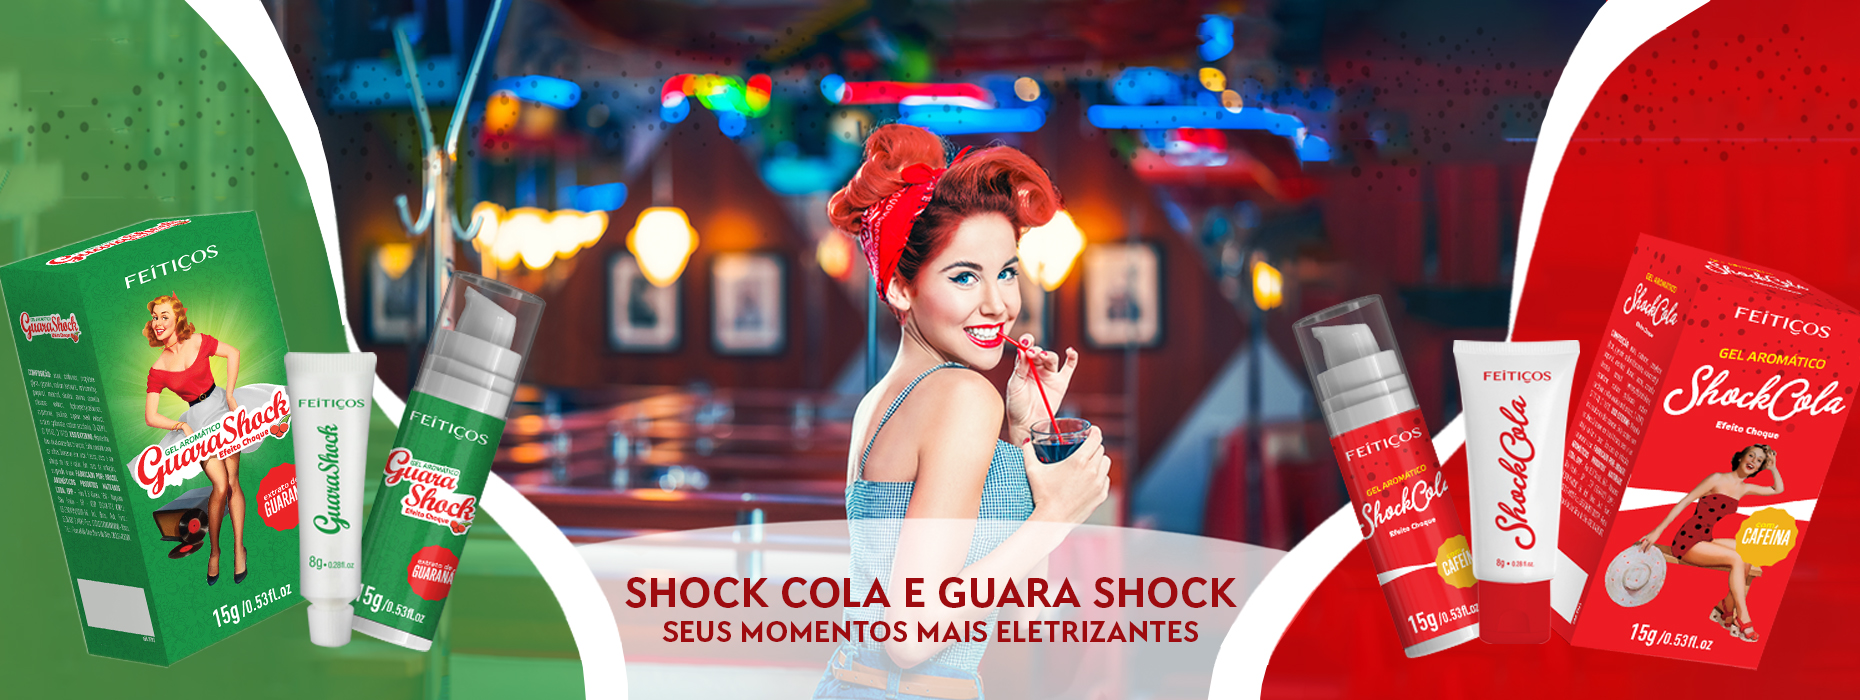 Gel Eletrizante - Guara Shock & Shock Cola